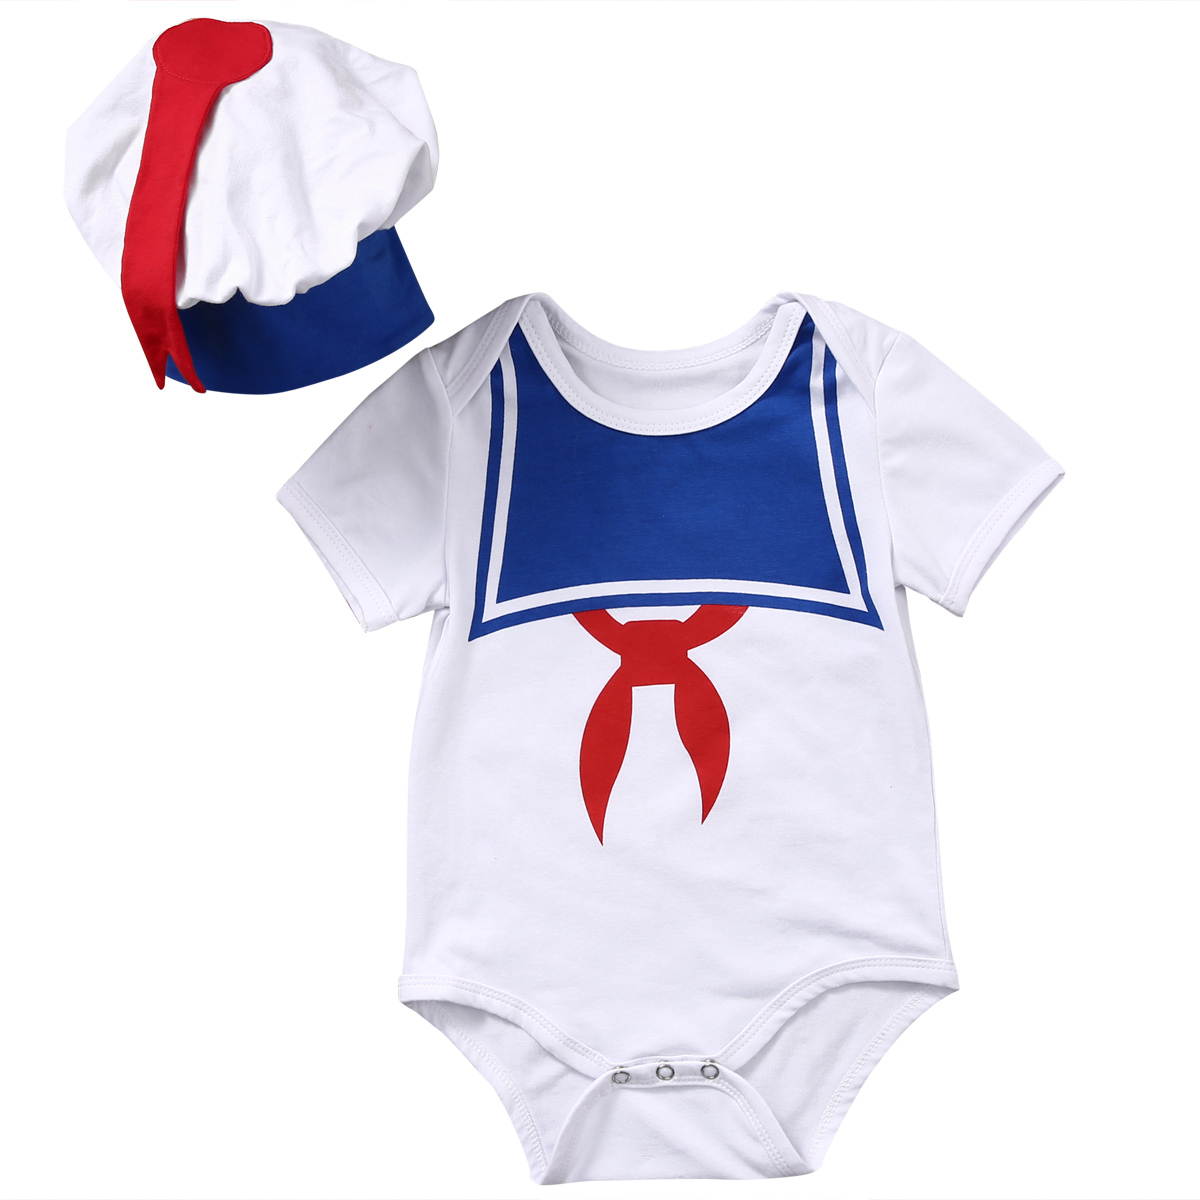 2017 All Seasons Newborn Baby Boys Girls Short Sleeve Bodysuit One-Piece Hat Sailor Suit Outfit Clothes